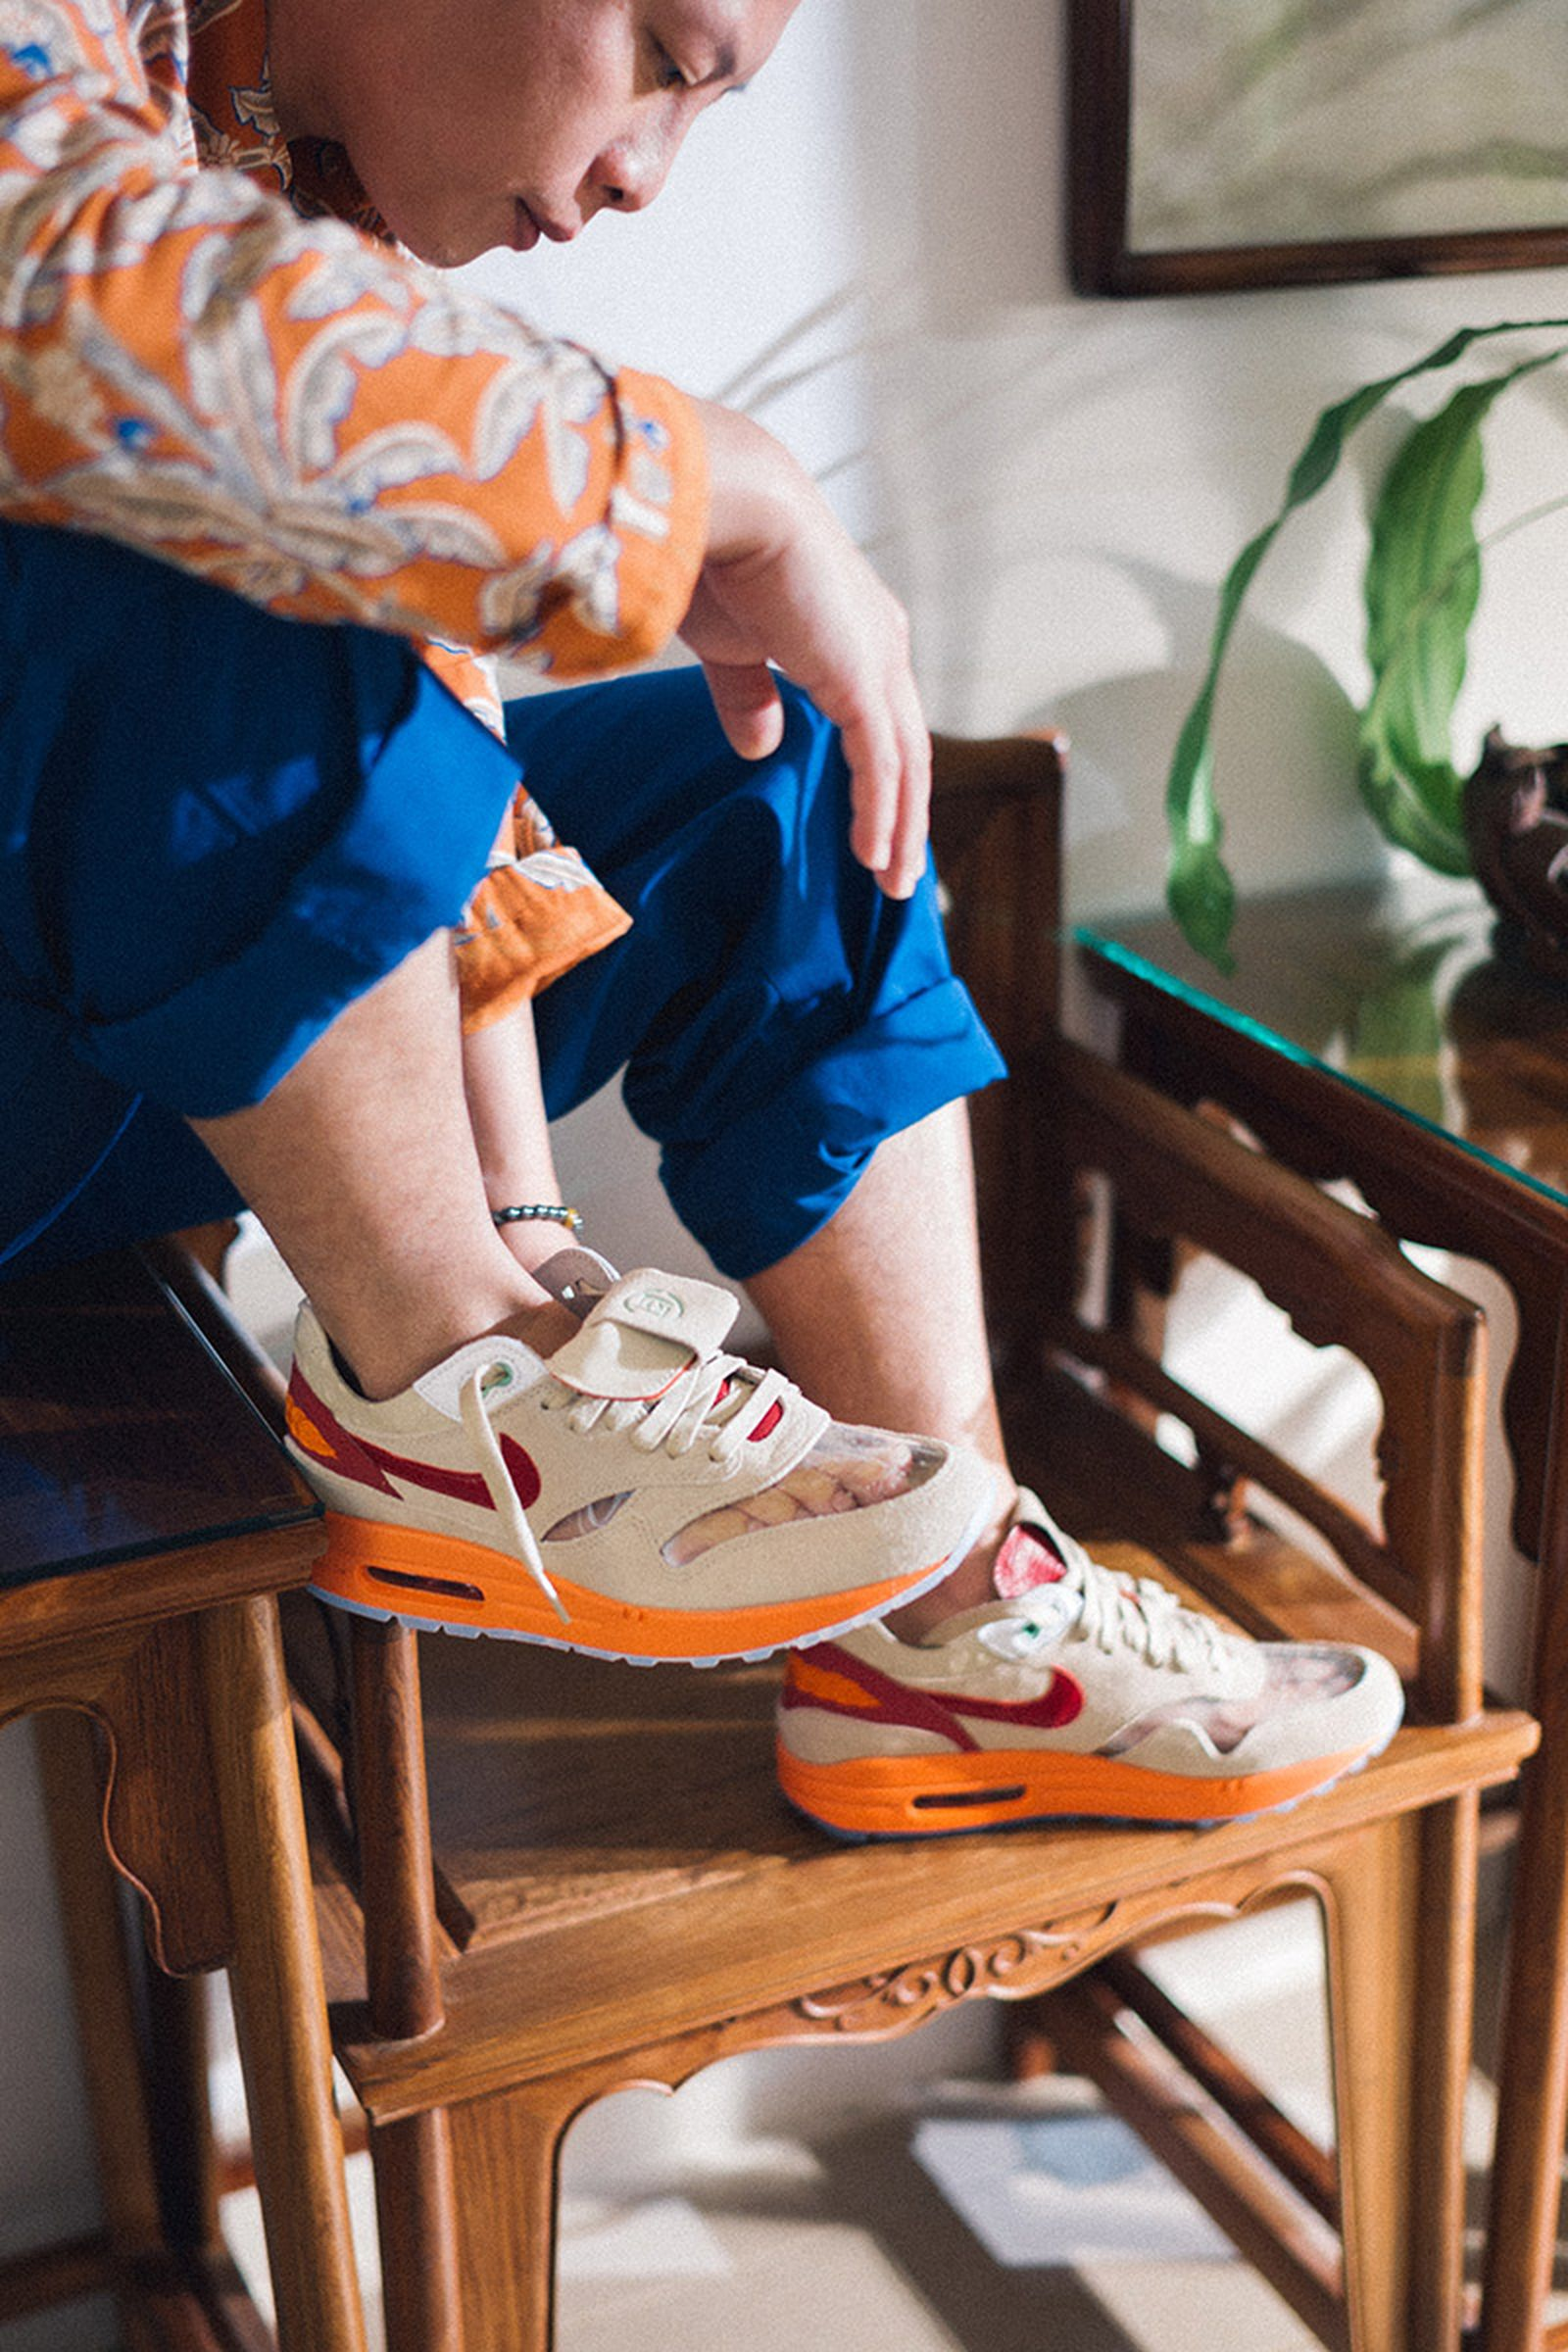 clot-nike-air-max-1-kiss-of-death-2021-release-date-price-06